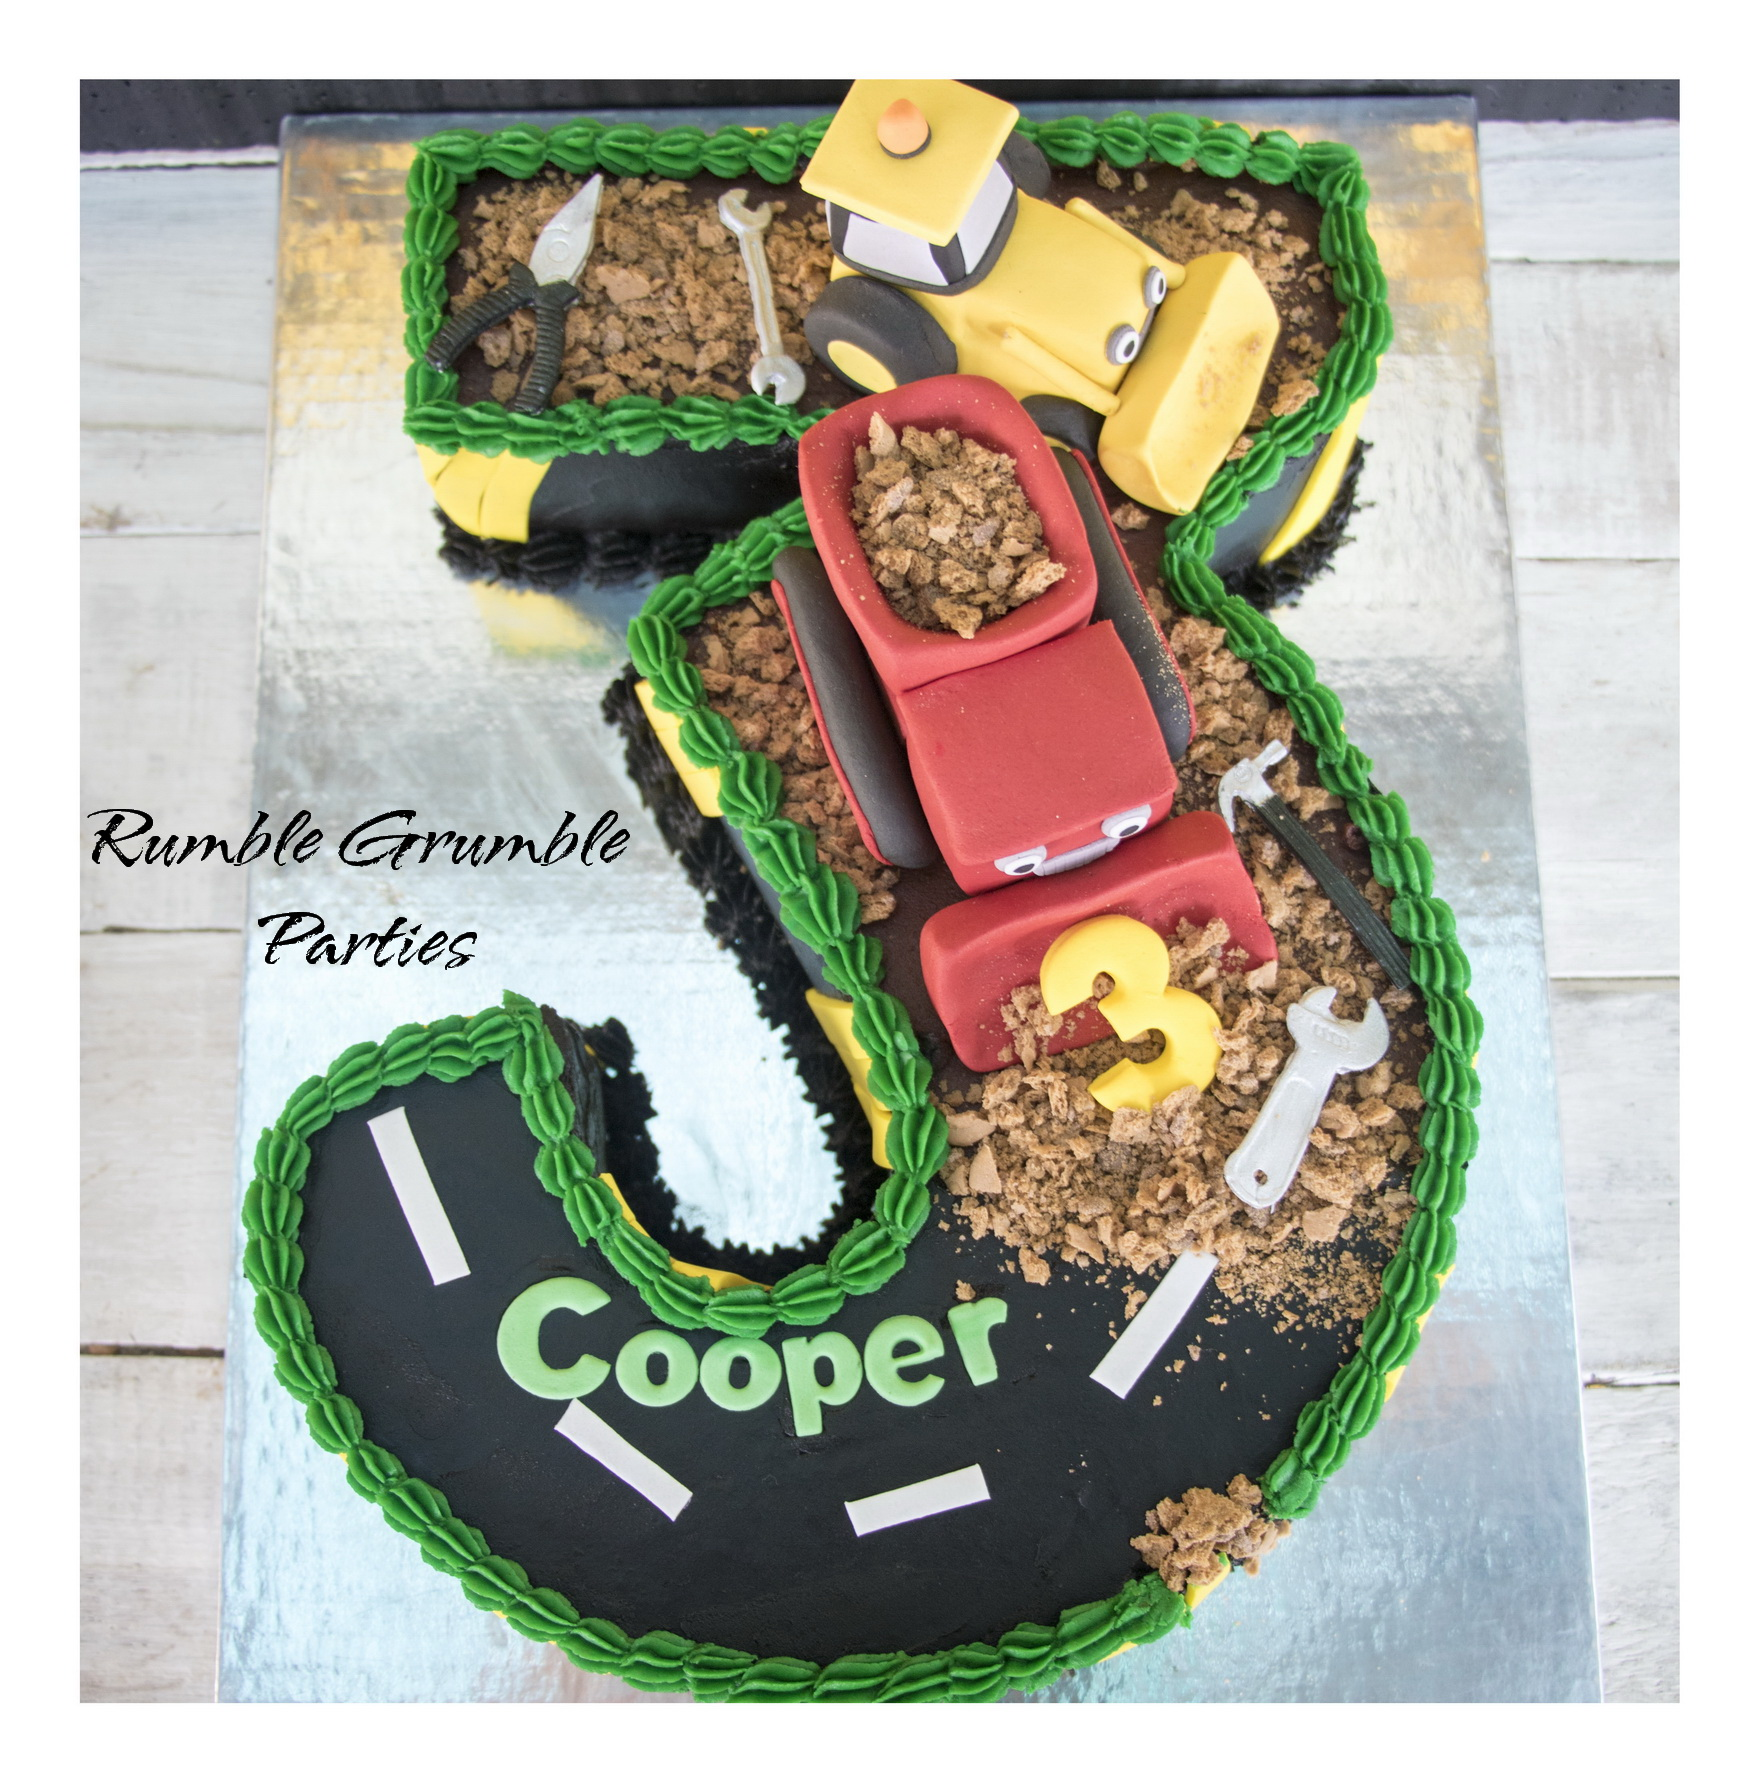 Number 3 Construction Cake – Rumble Grumble Parties